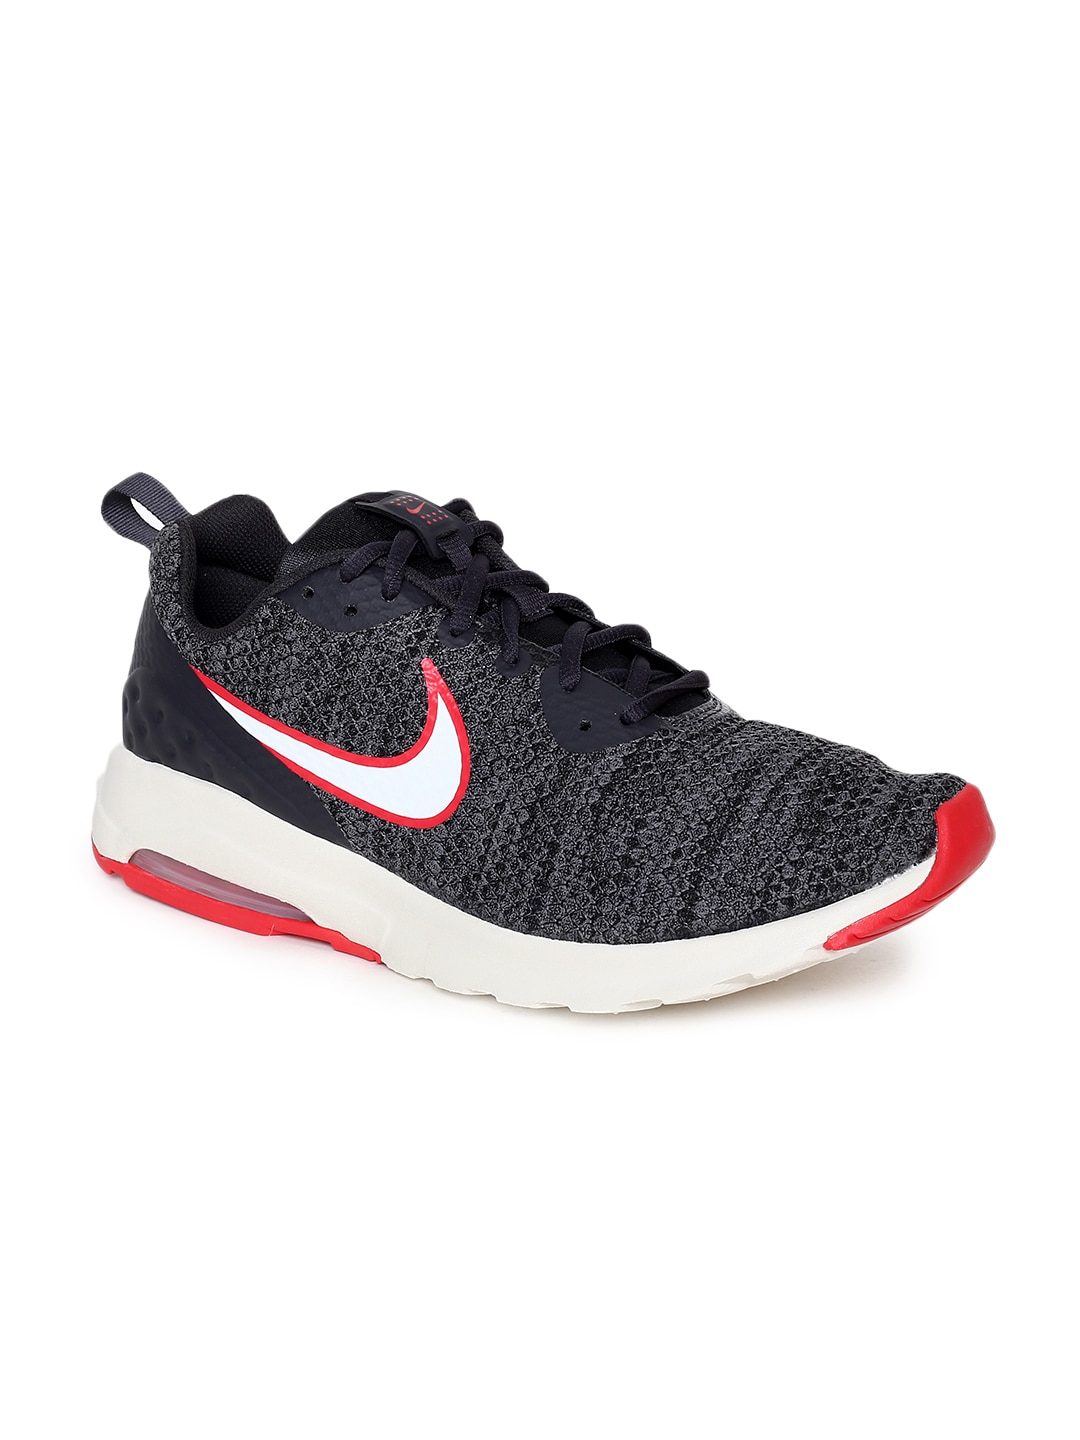 Nike Air Max Shoes - Buy Nike Air Max Shoes Online for Men   Women a7f3e3139